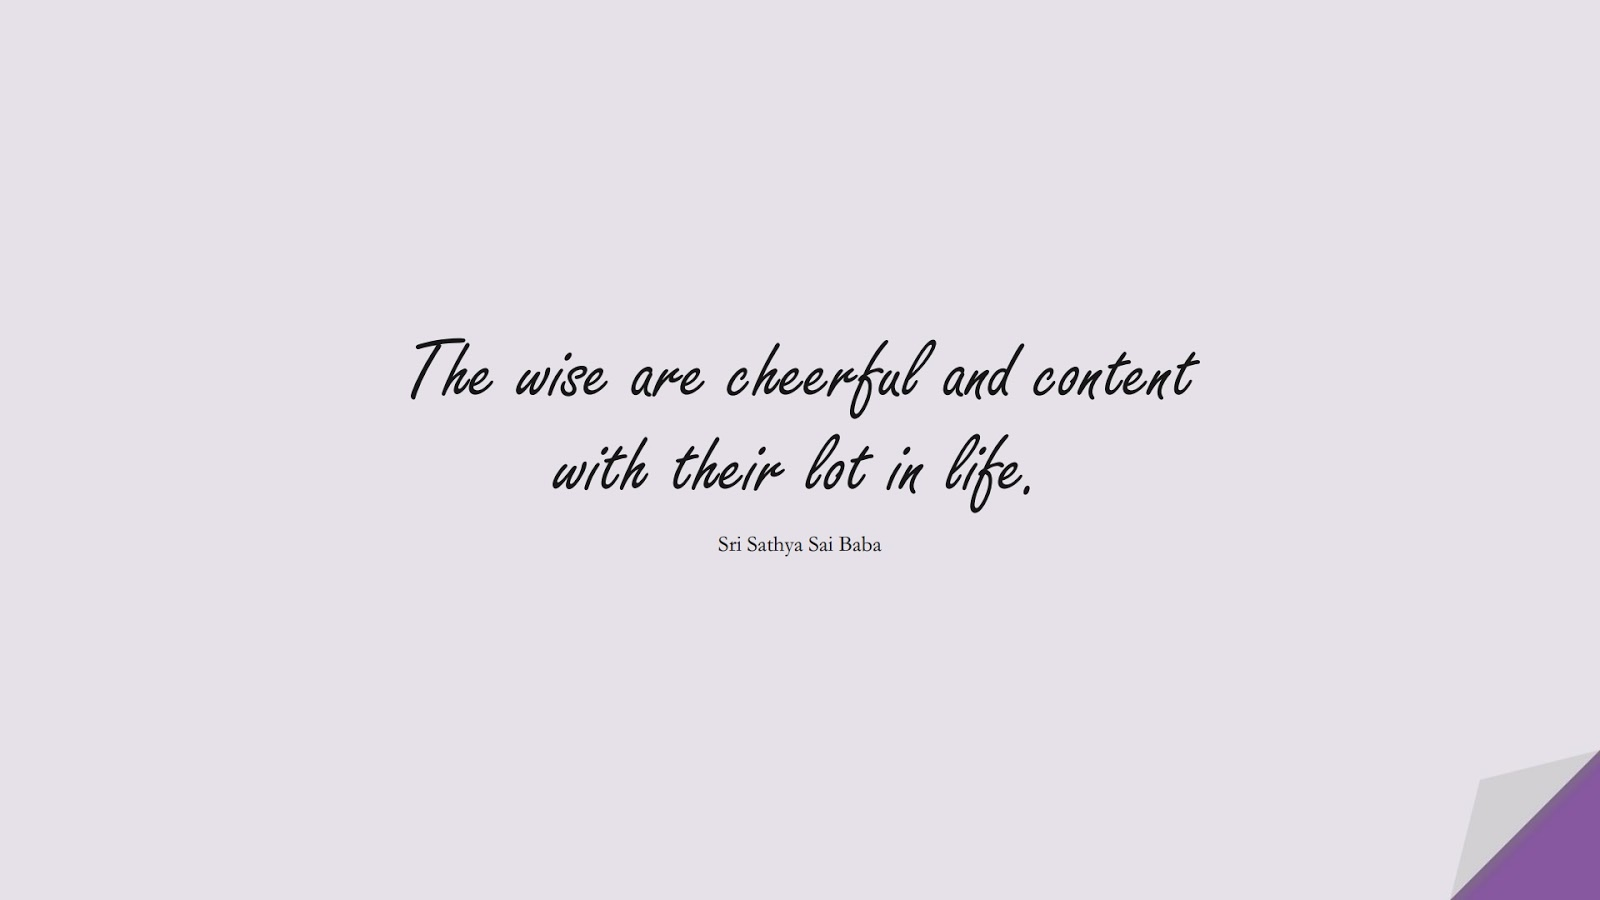 The wise are cheerful and content with their lot in life. (Sri Sathya Sai Baba);  #WordsofWisdom